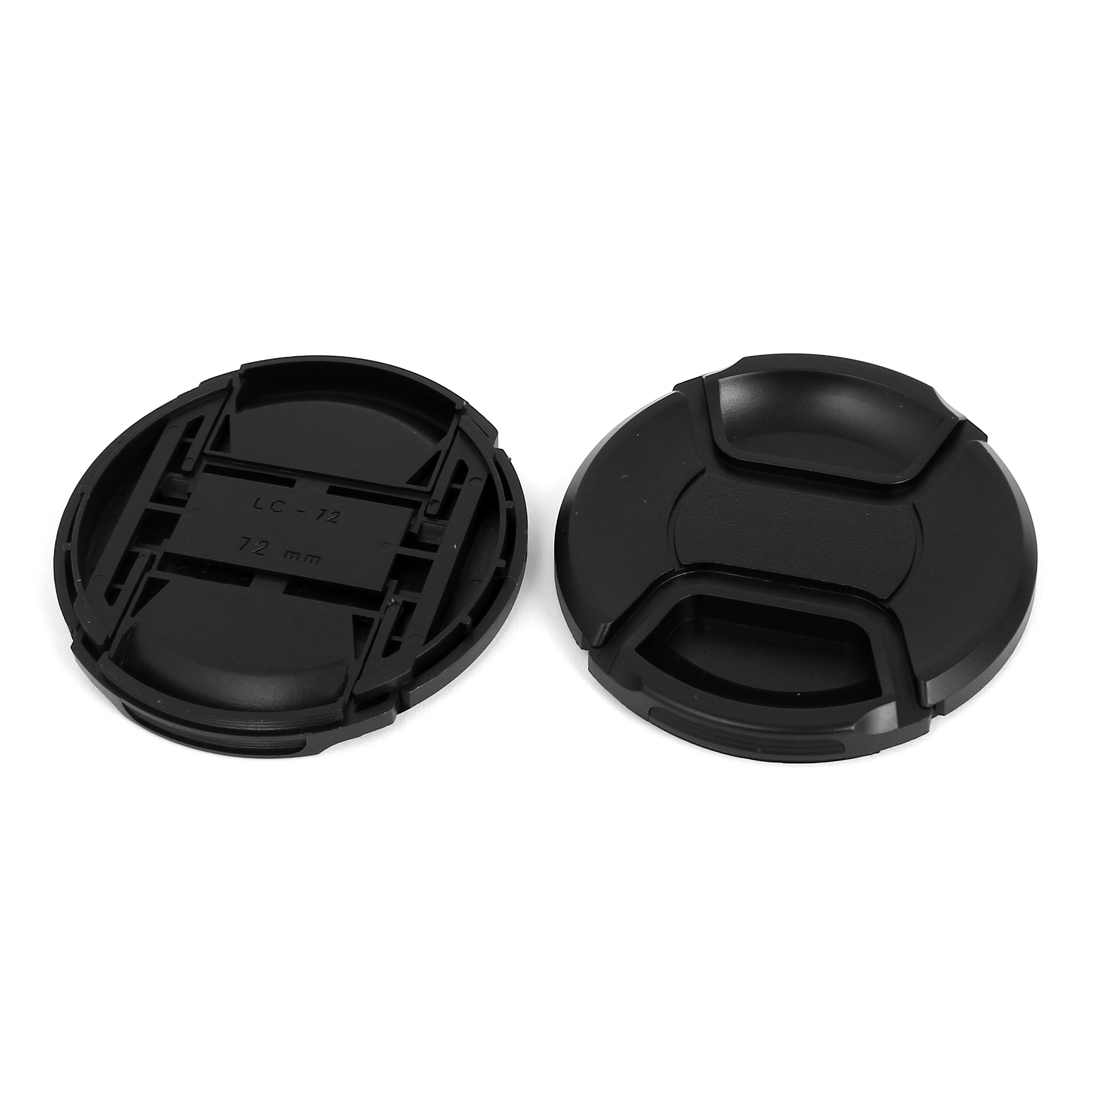 72mm Dia Plastic Front Snap Digital Camera Lens Caps Cover Protector Black 2Pcs